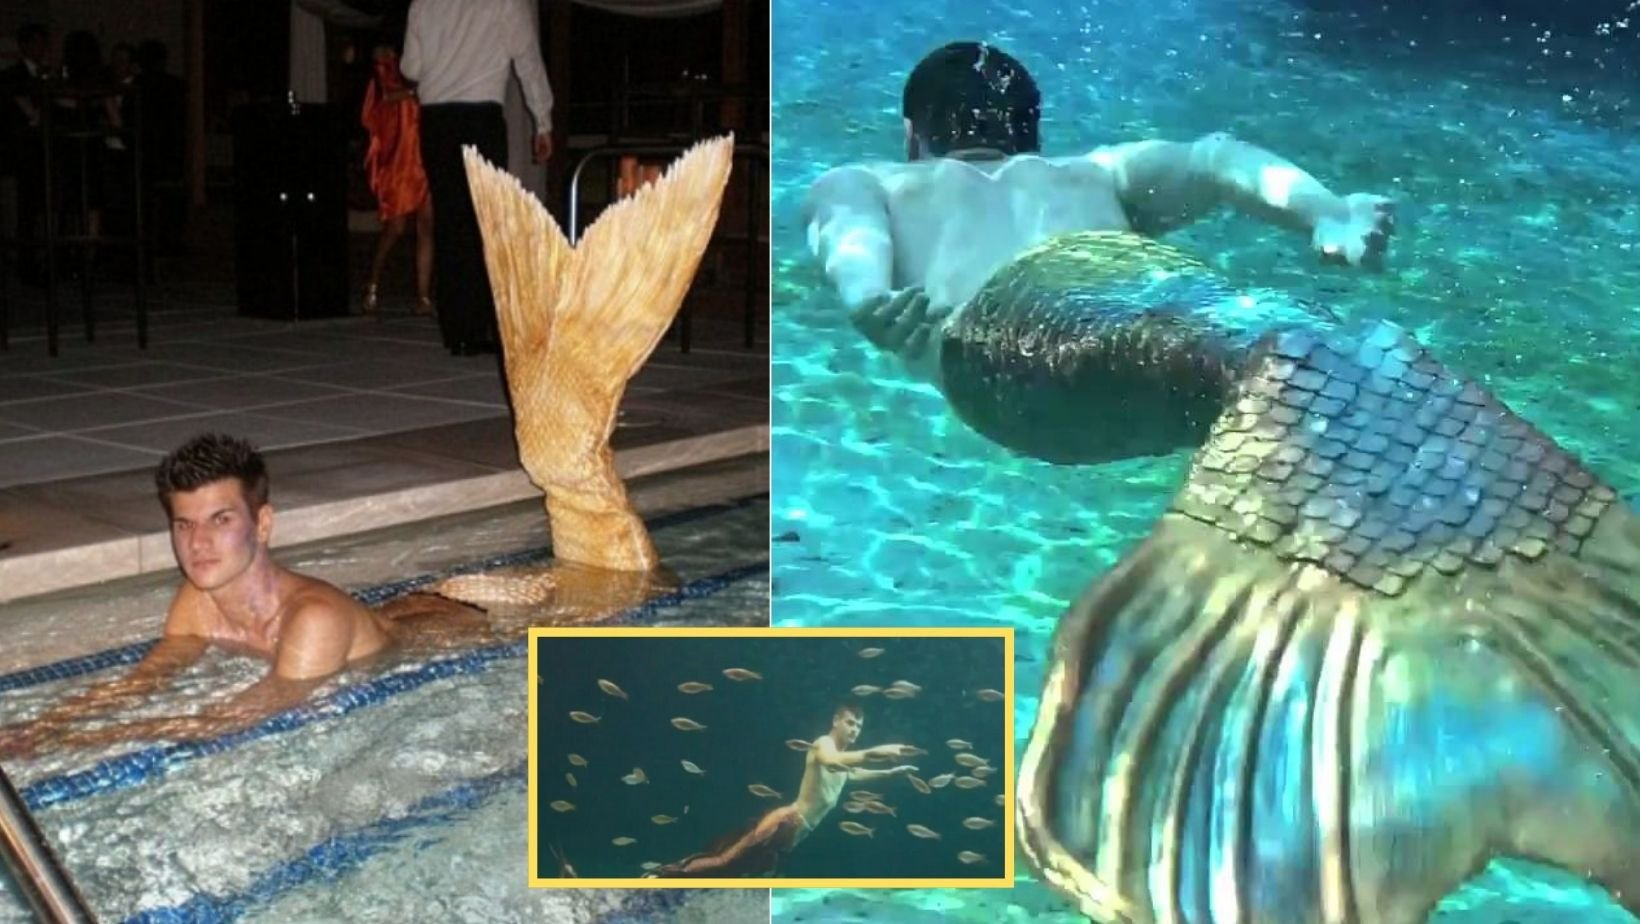 small joys thumbnail 9.jpg?resize=1200,630 - Man Wears Mermaid Tail & Regularly Swims With It Even If Onlookers Always Tells Him That Mermaids Are For 'Girls' Only